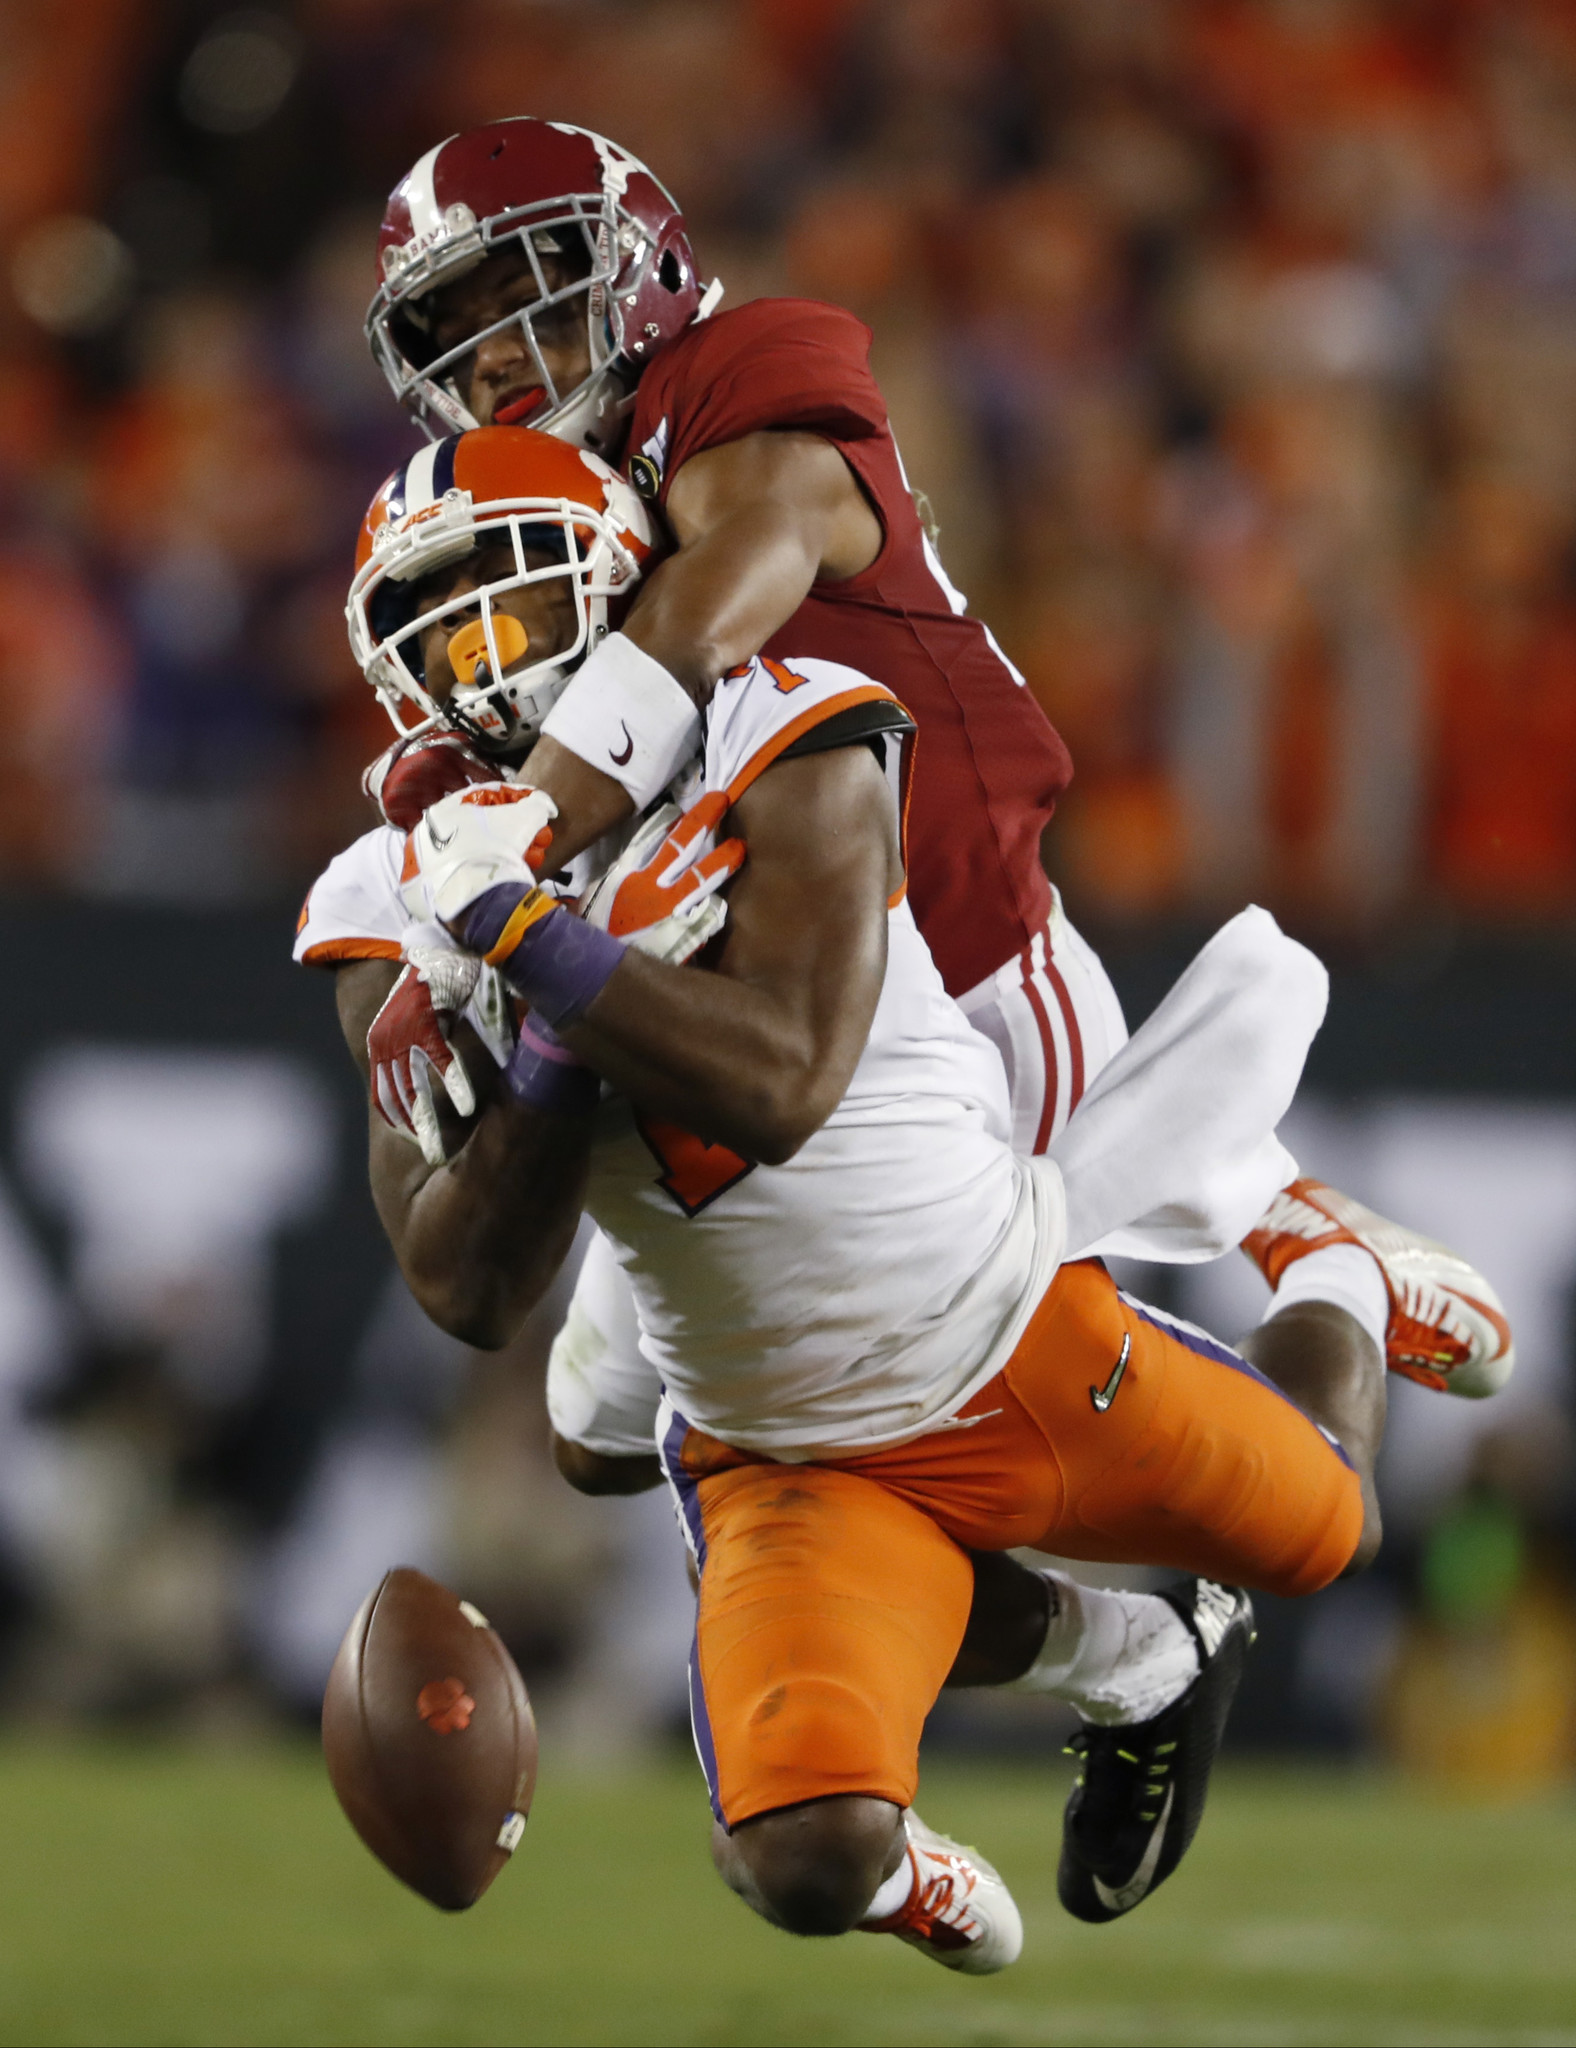 Bal-ravens-select-alabama-cb-marlon-humphrey-with-no-16-overall-pick-in-nfl-draft-20170427